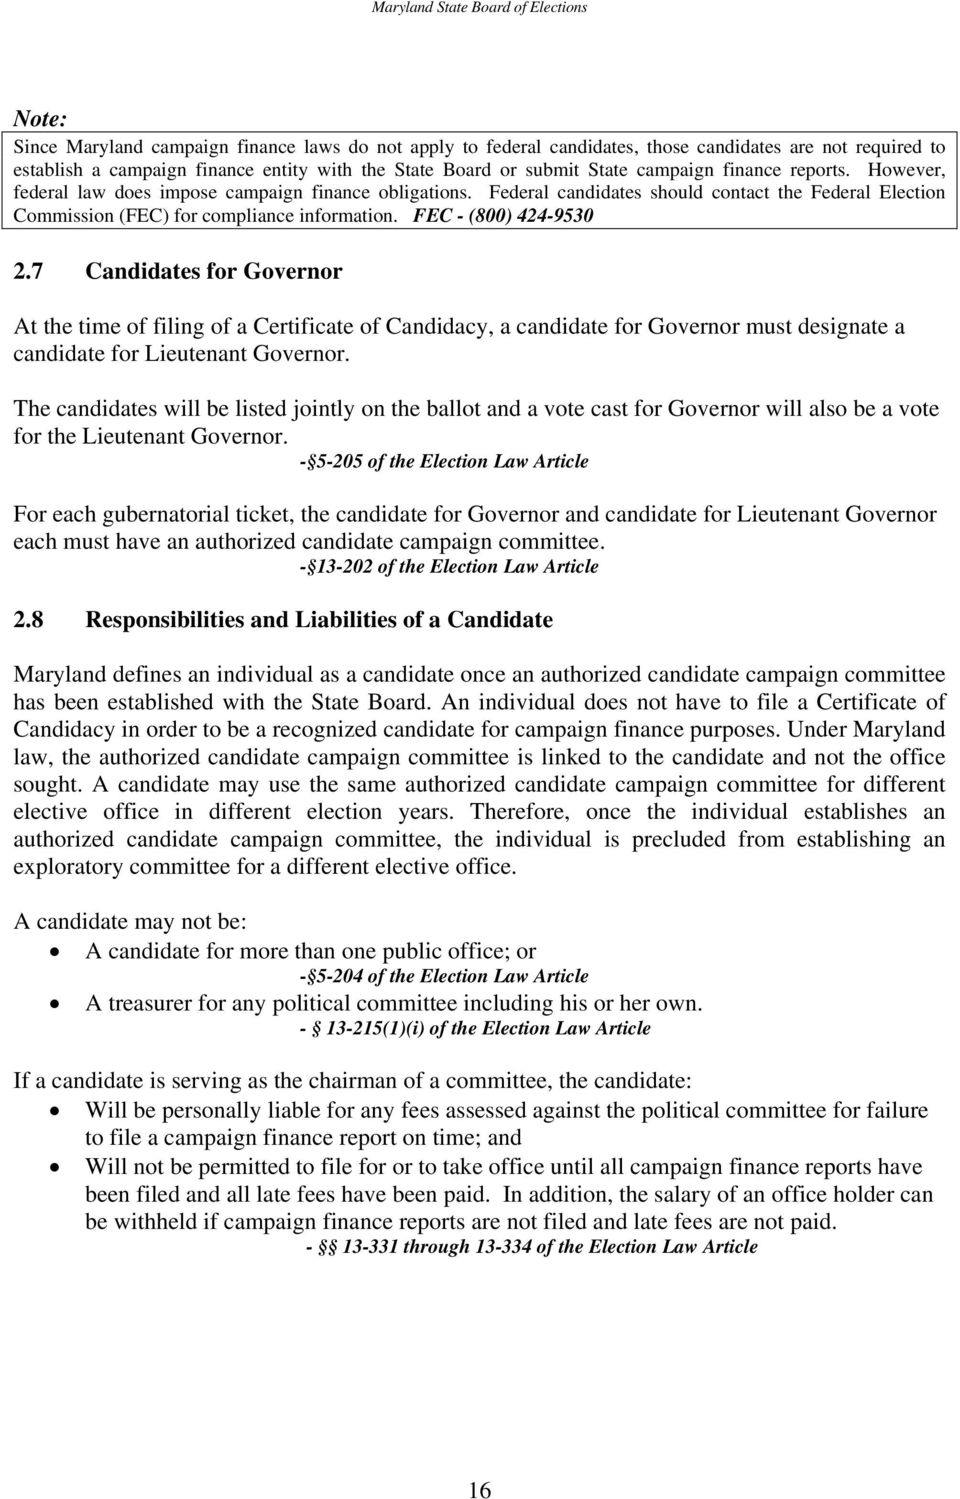 FEC - (800) 424-9530 2.7 Candidates for Governor At the time of filing of a Certificate of Candidacy, a candidate for Governor must designate a candidate for Lieutenant Governor.